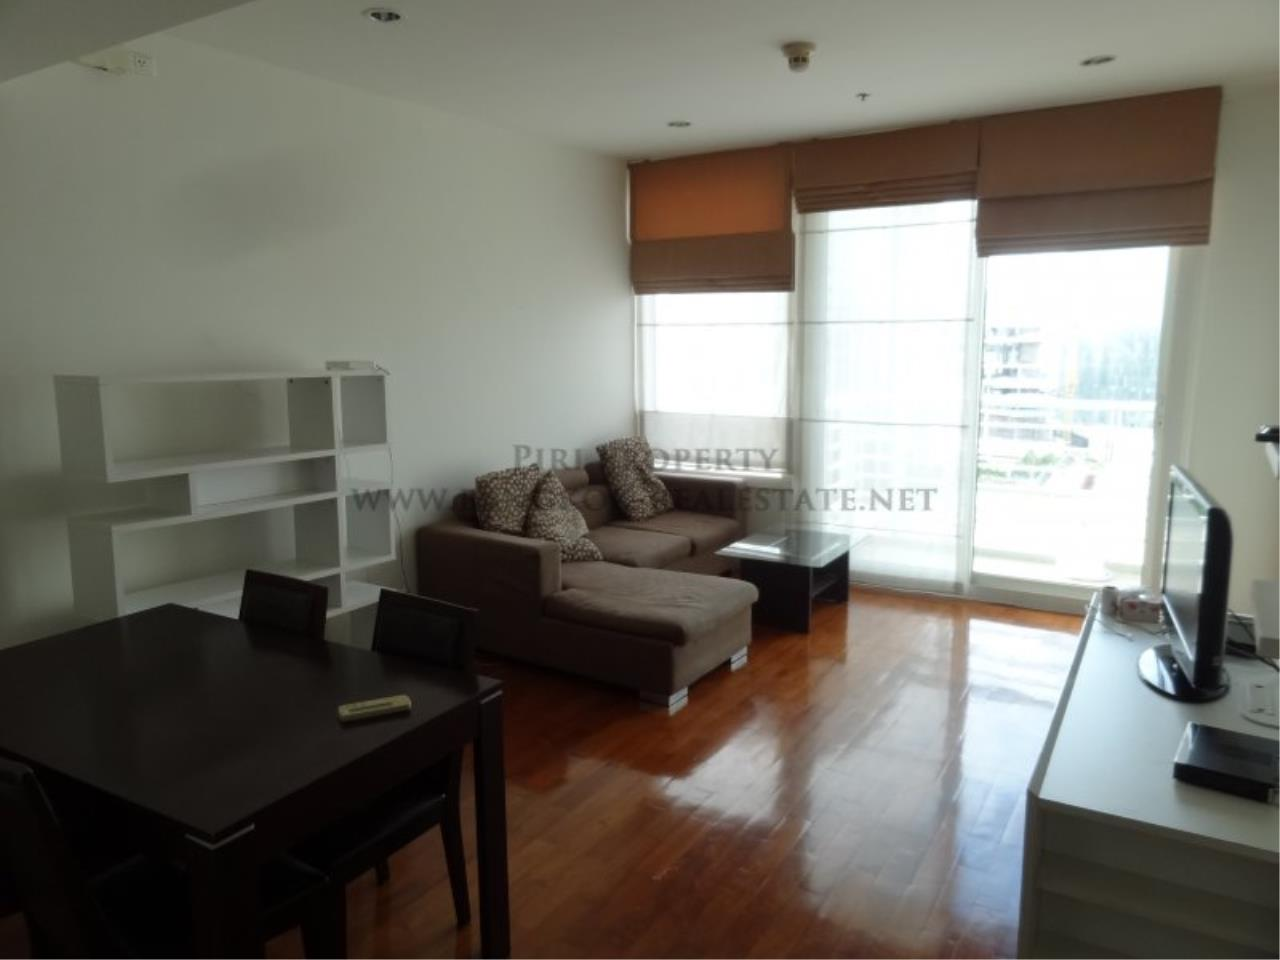 Piri Property Agency's Siri Residence - Big 1 Bedroom Condo in Sukhumvit 24 2